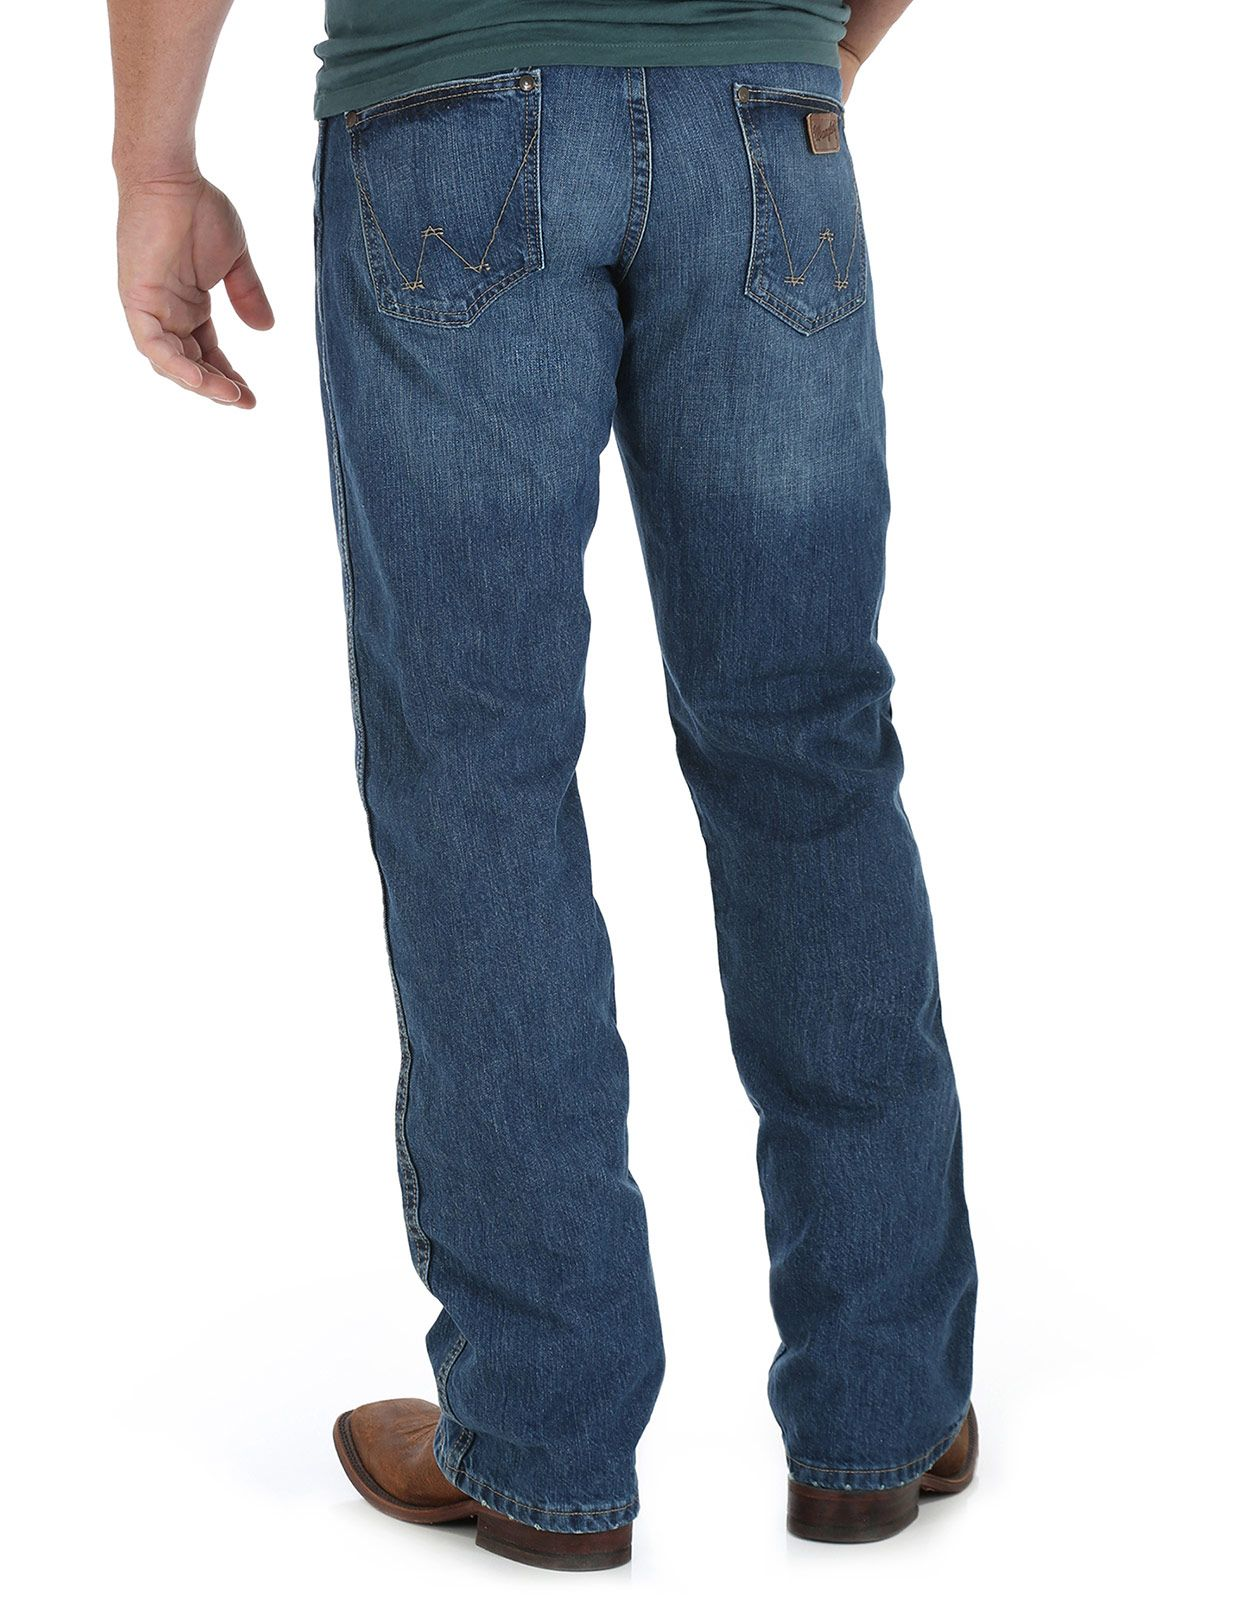 Wrangler Men's Retro Mid Rise Relaxed Fit Boot Cut Jeans - True Blue